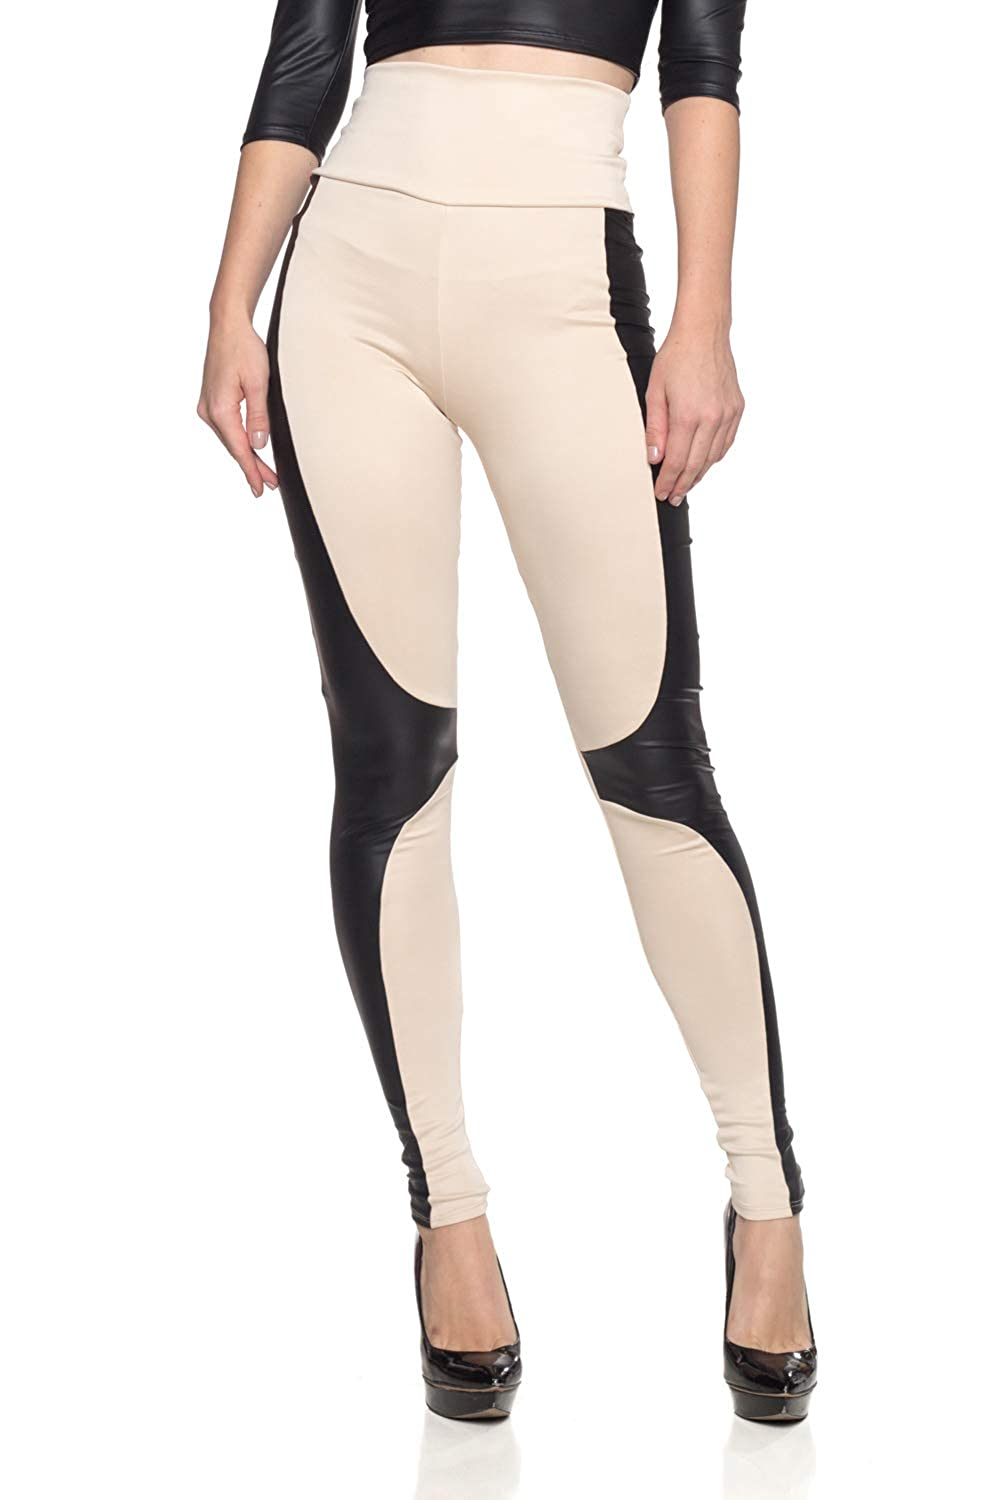 1621e6477ebcee High quality scuba fabric (92% Polyester 8% Spandex) Stretchy knit leggings  feature moto-inspired faux leather insets along the sides and knees.